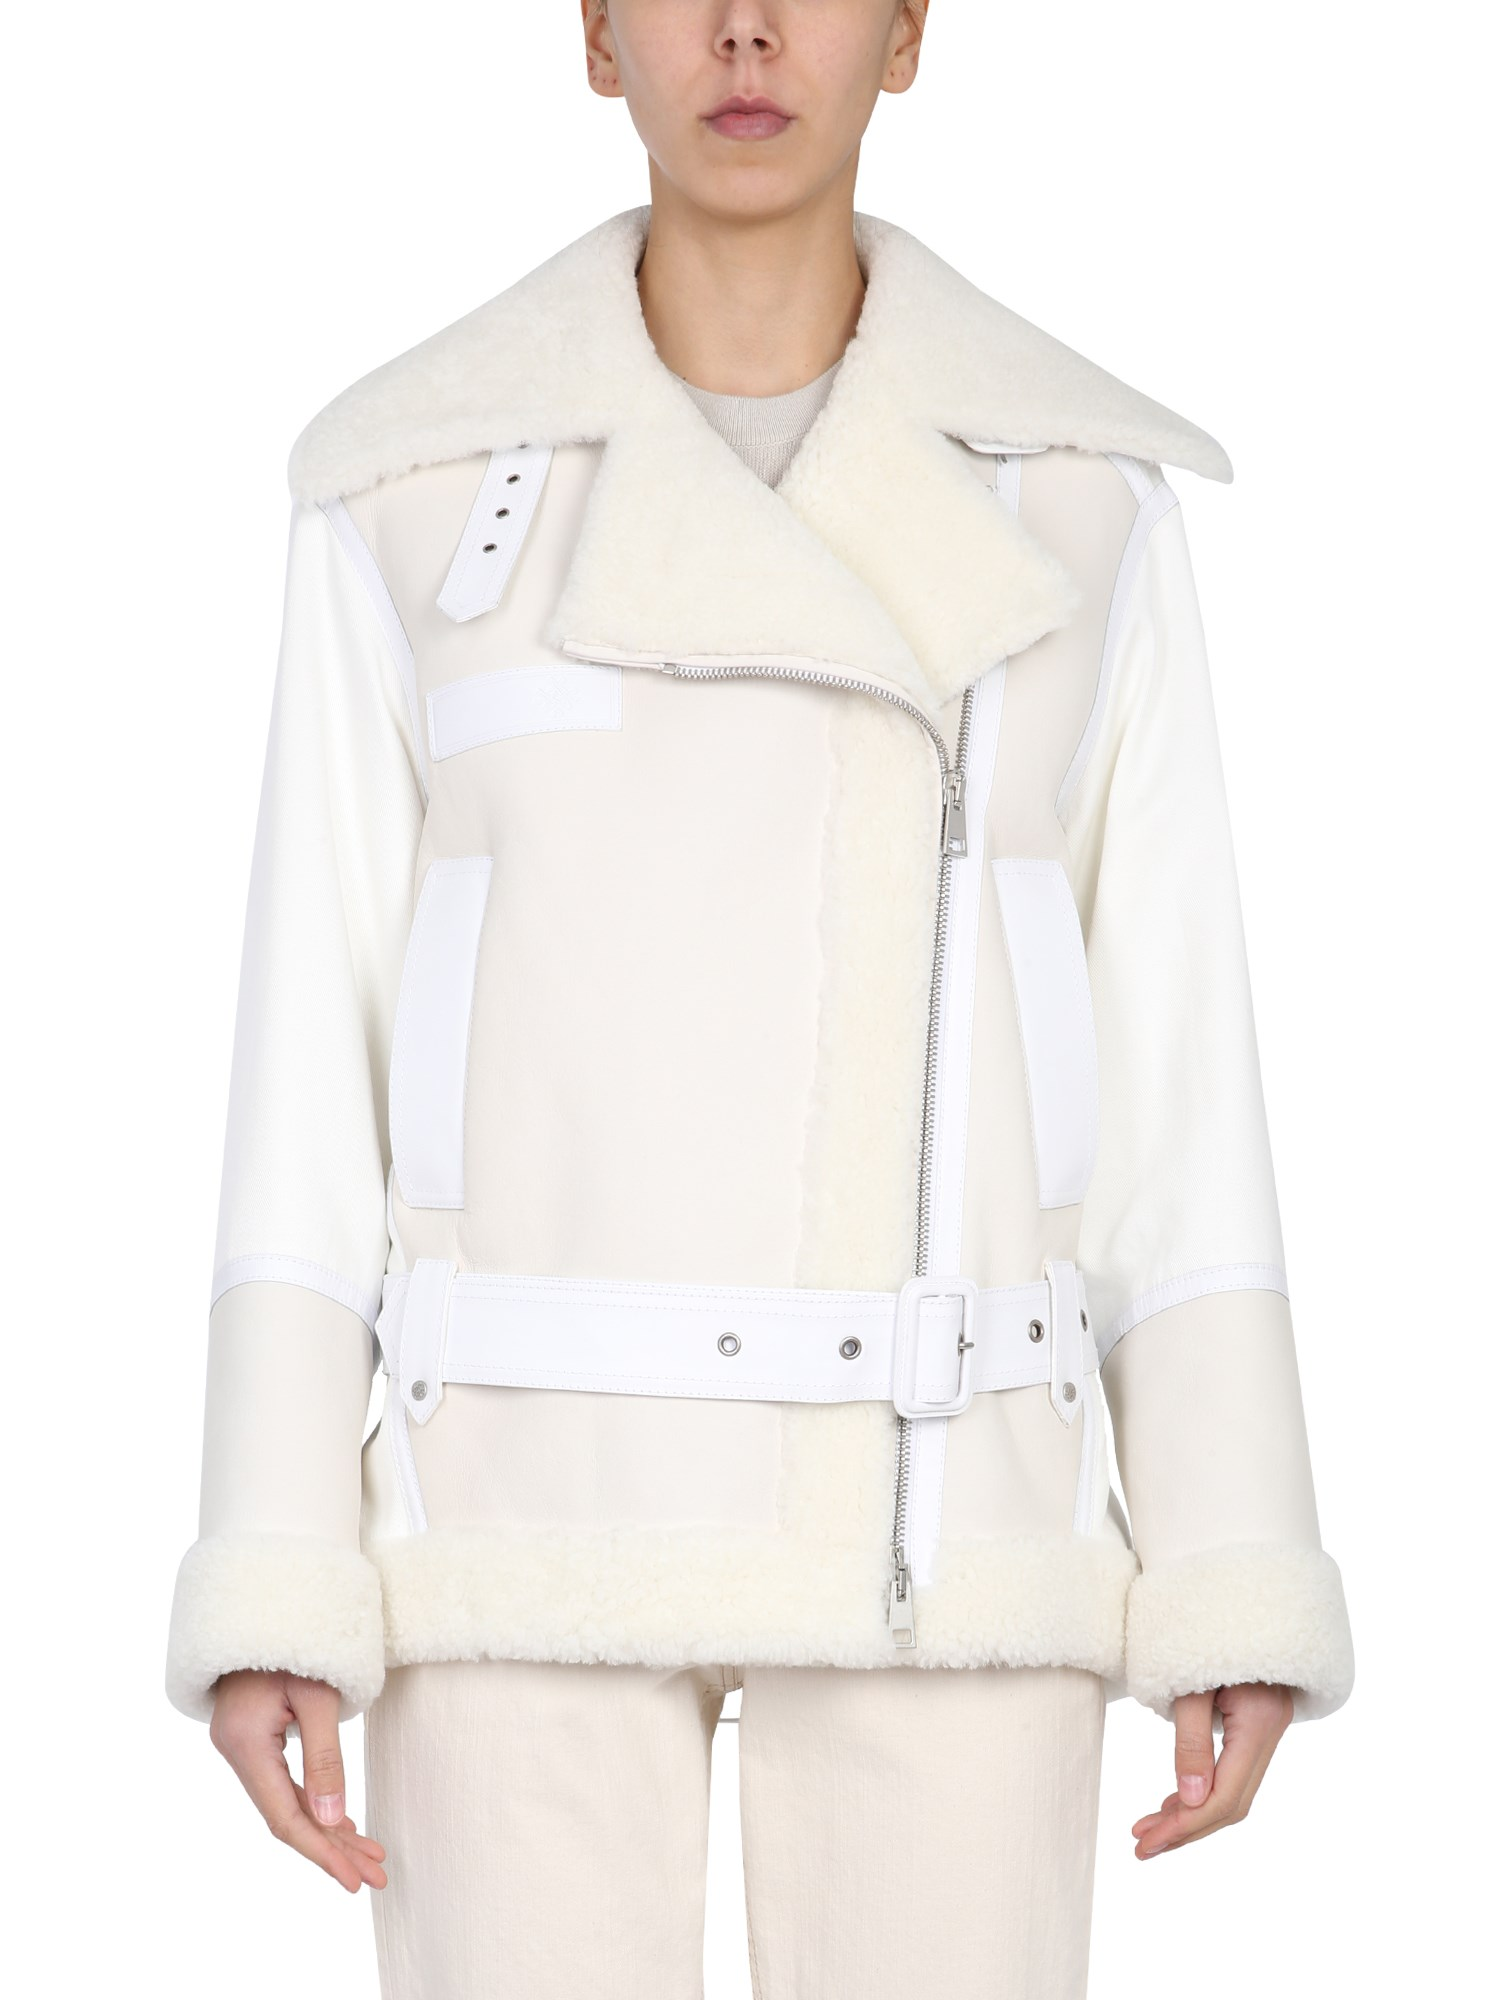 Mr & Mrs Italy ELIZABETH SULCER CAPSULE LEATHER JACKET